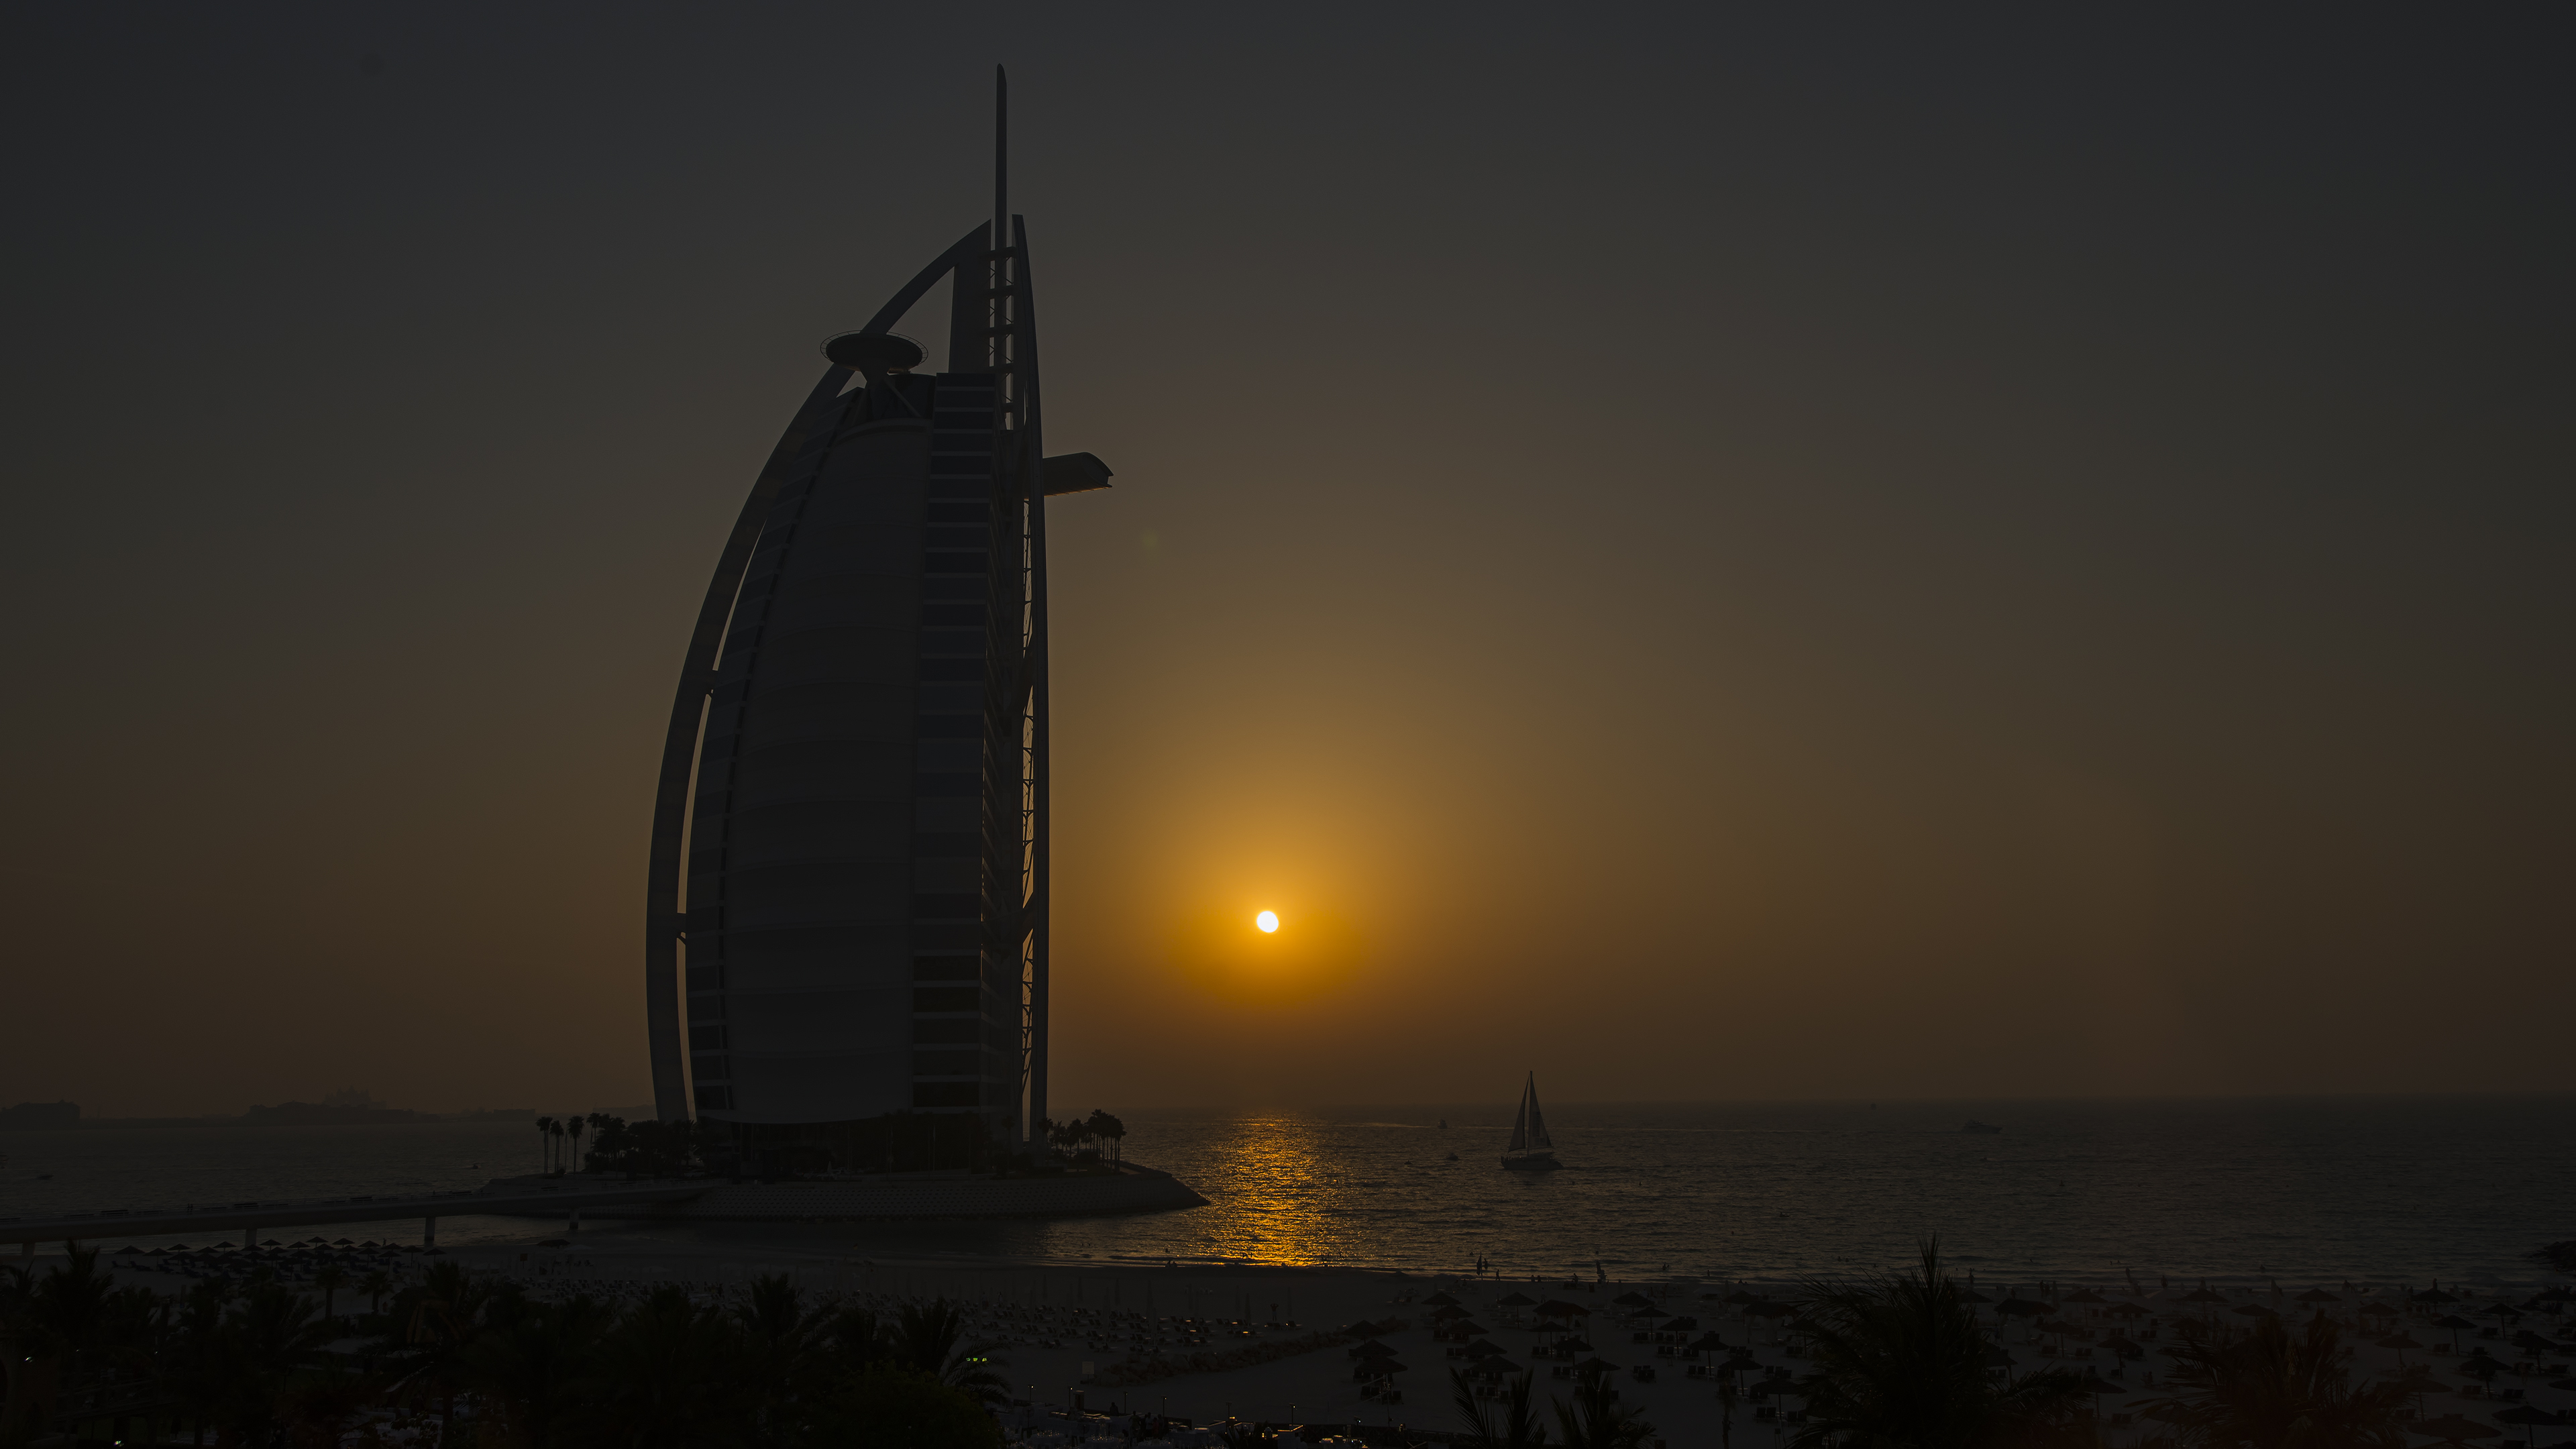 Sunset and Burj Al Arab